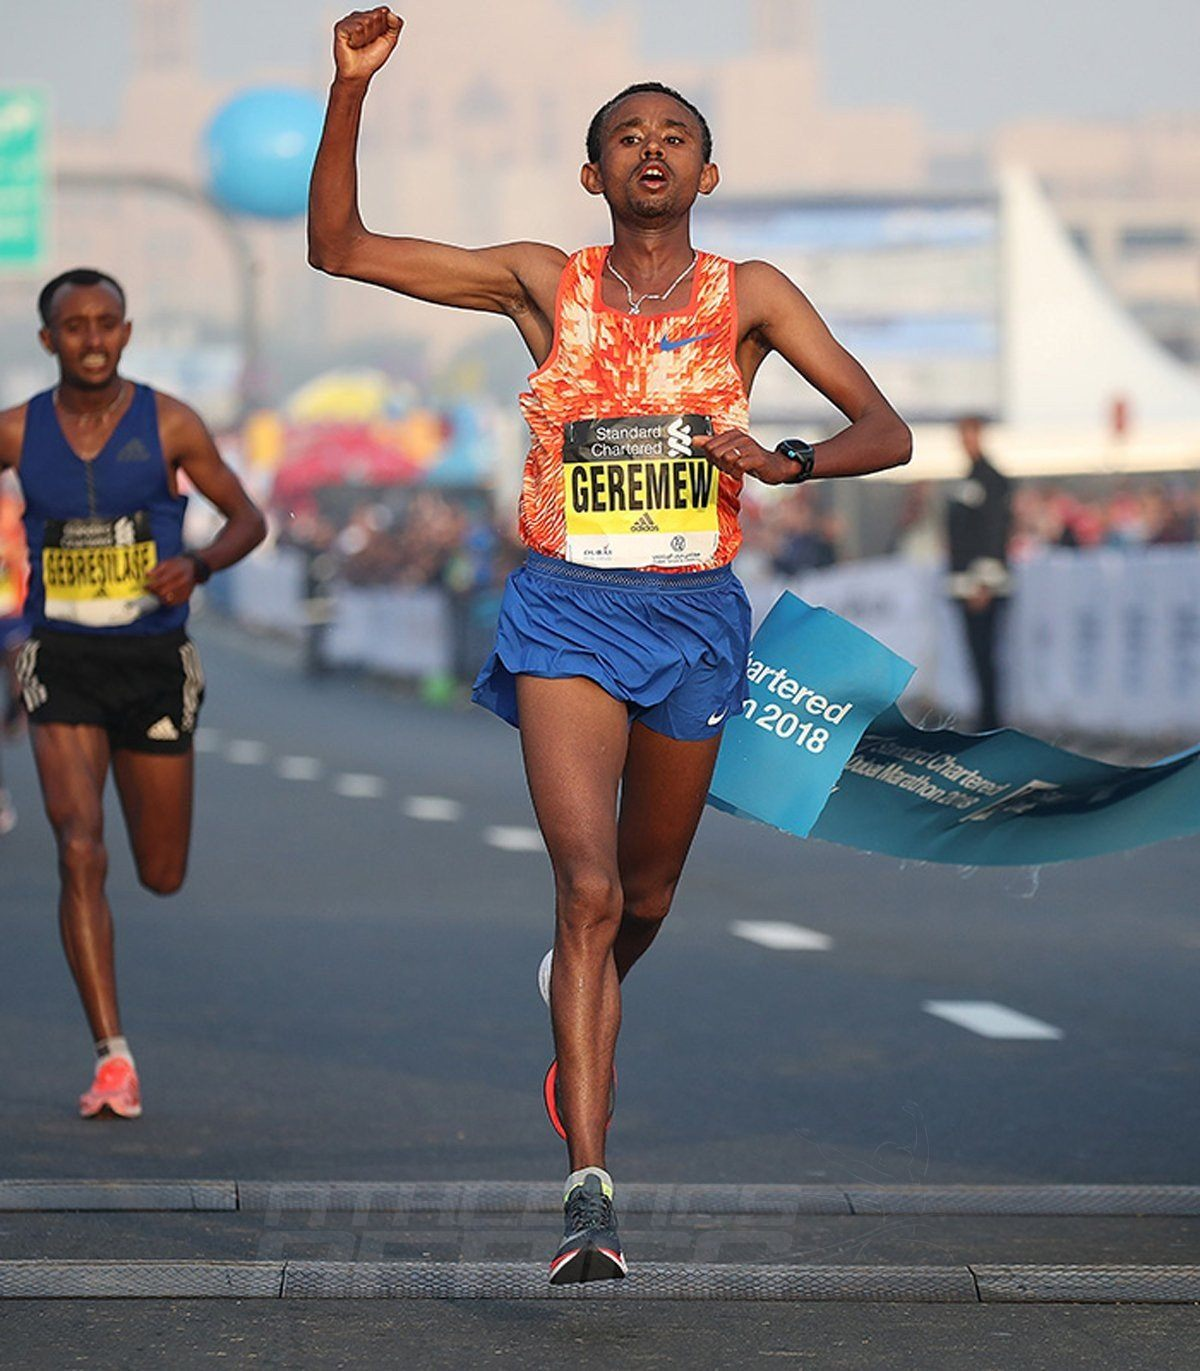 Ethiopia's Mosinet Geremew breaking the course record to take the men's title at the 2018 Standard Chartered Dubai Marathon / Photo Credit: Dubai Marathon Office